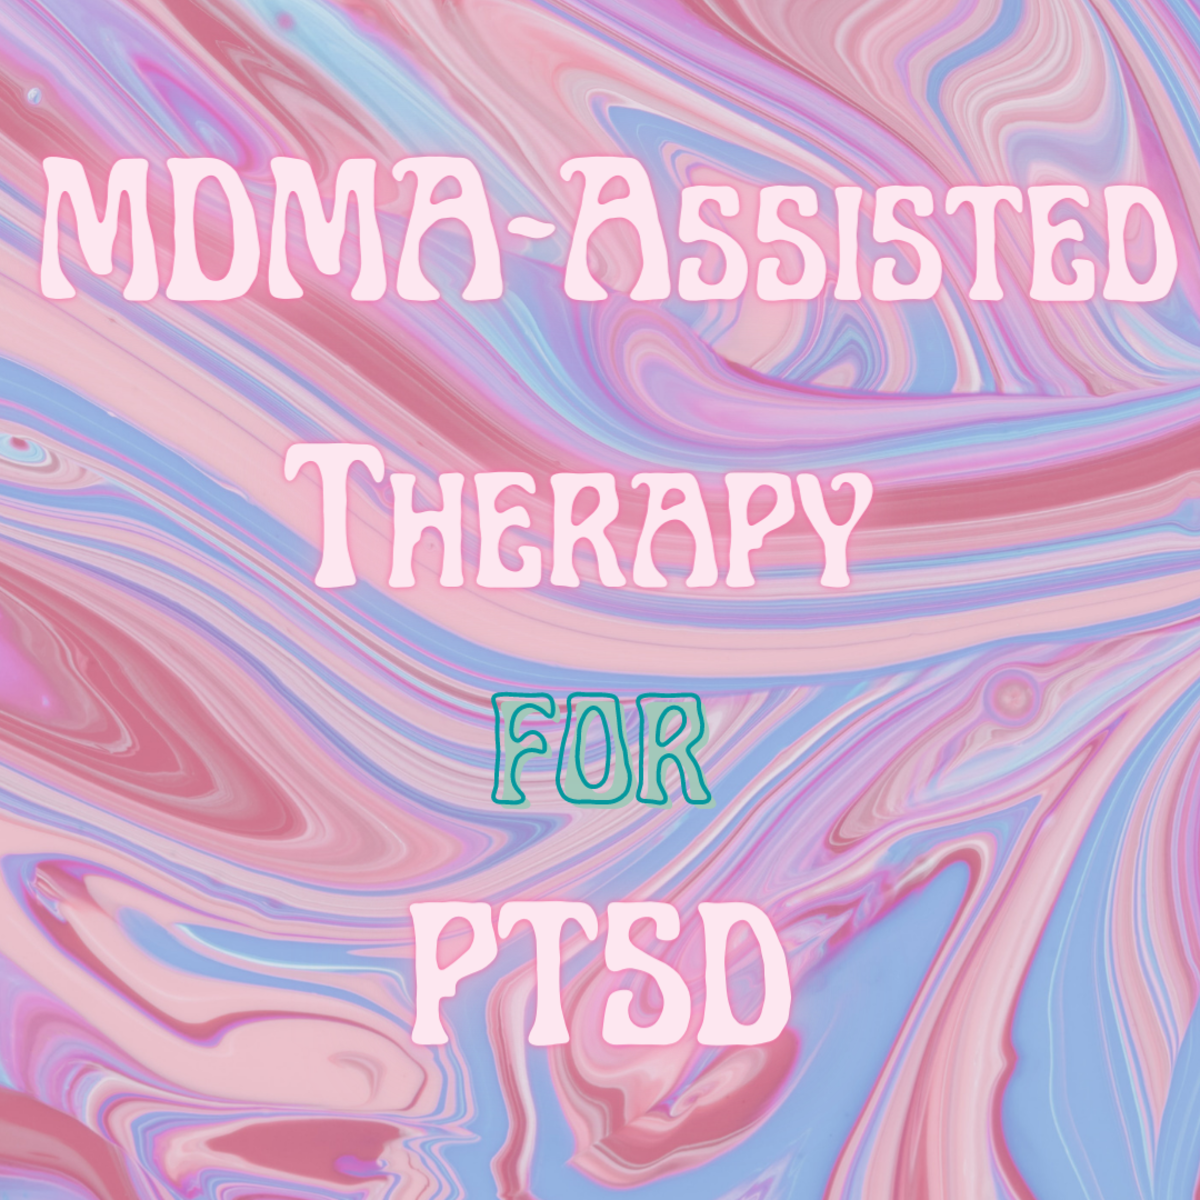 MDMA-Assisted Therapy for PTSD